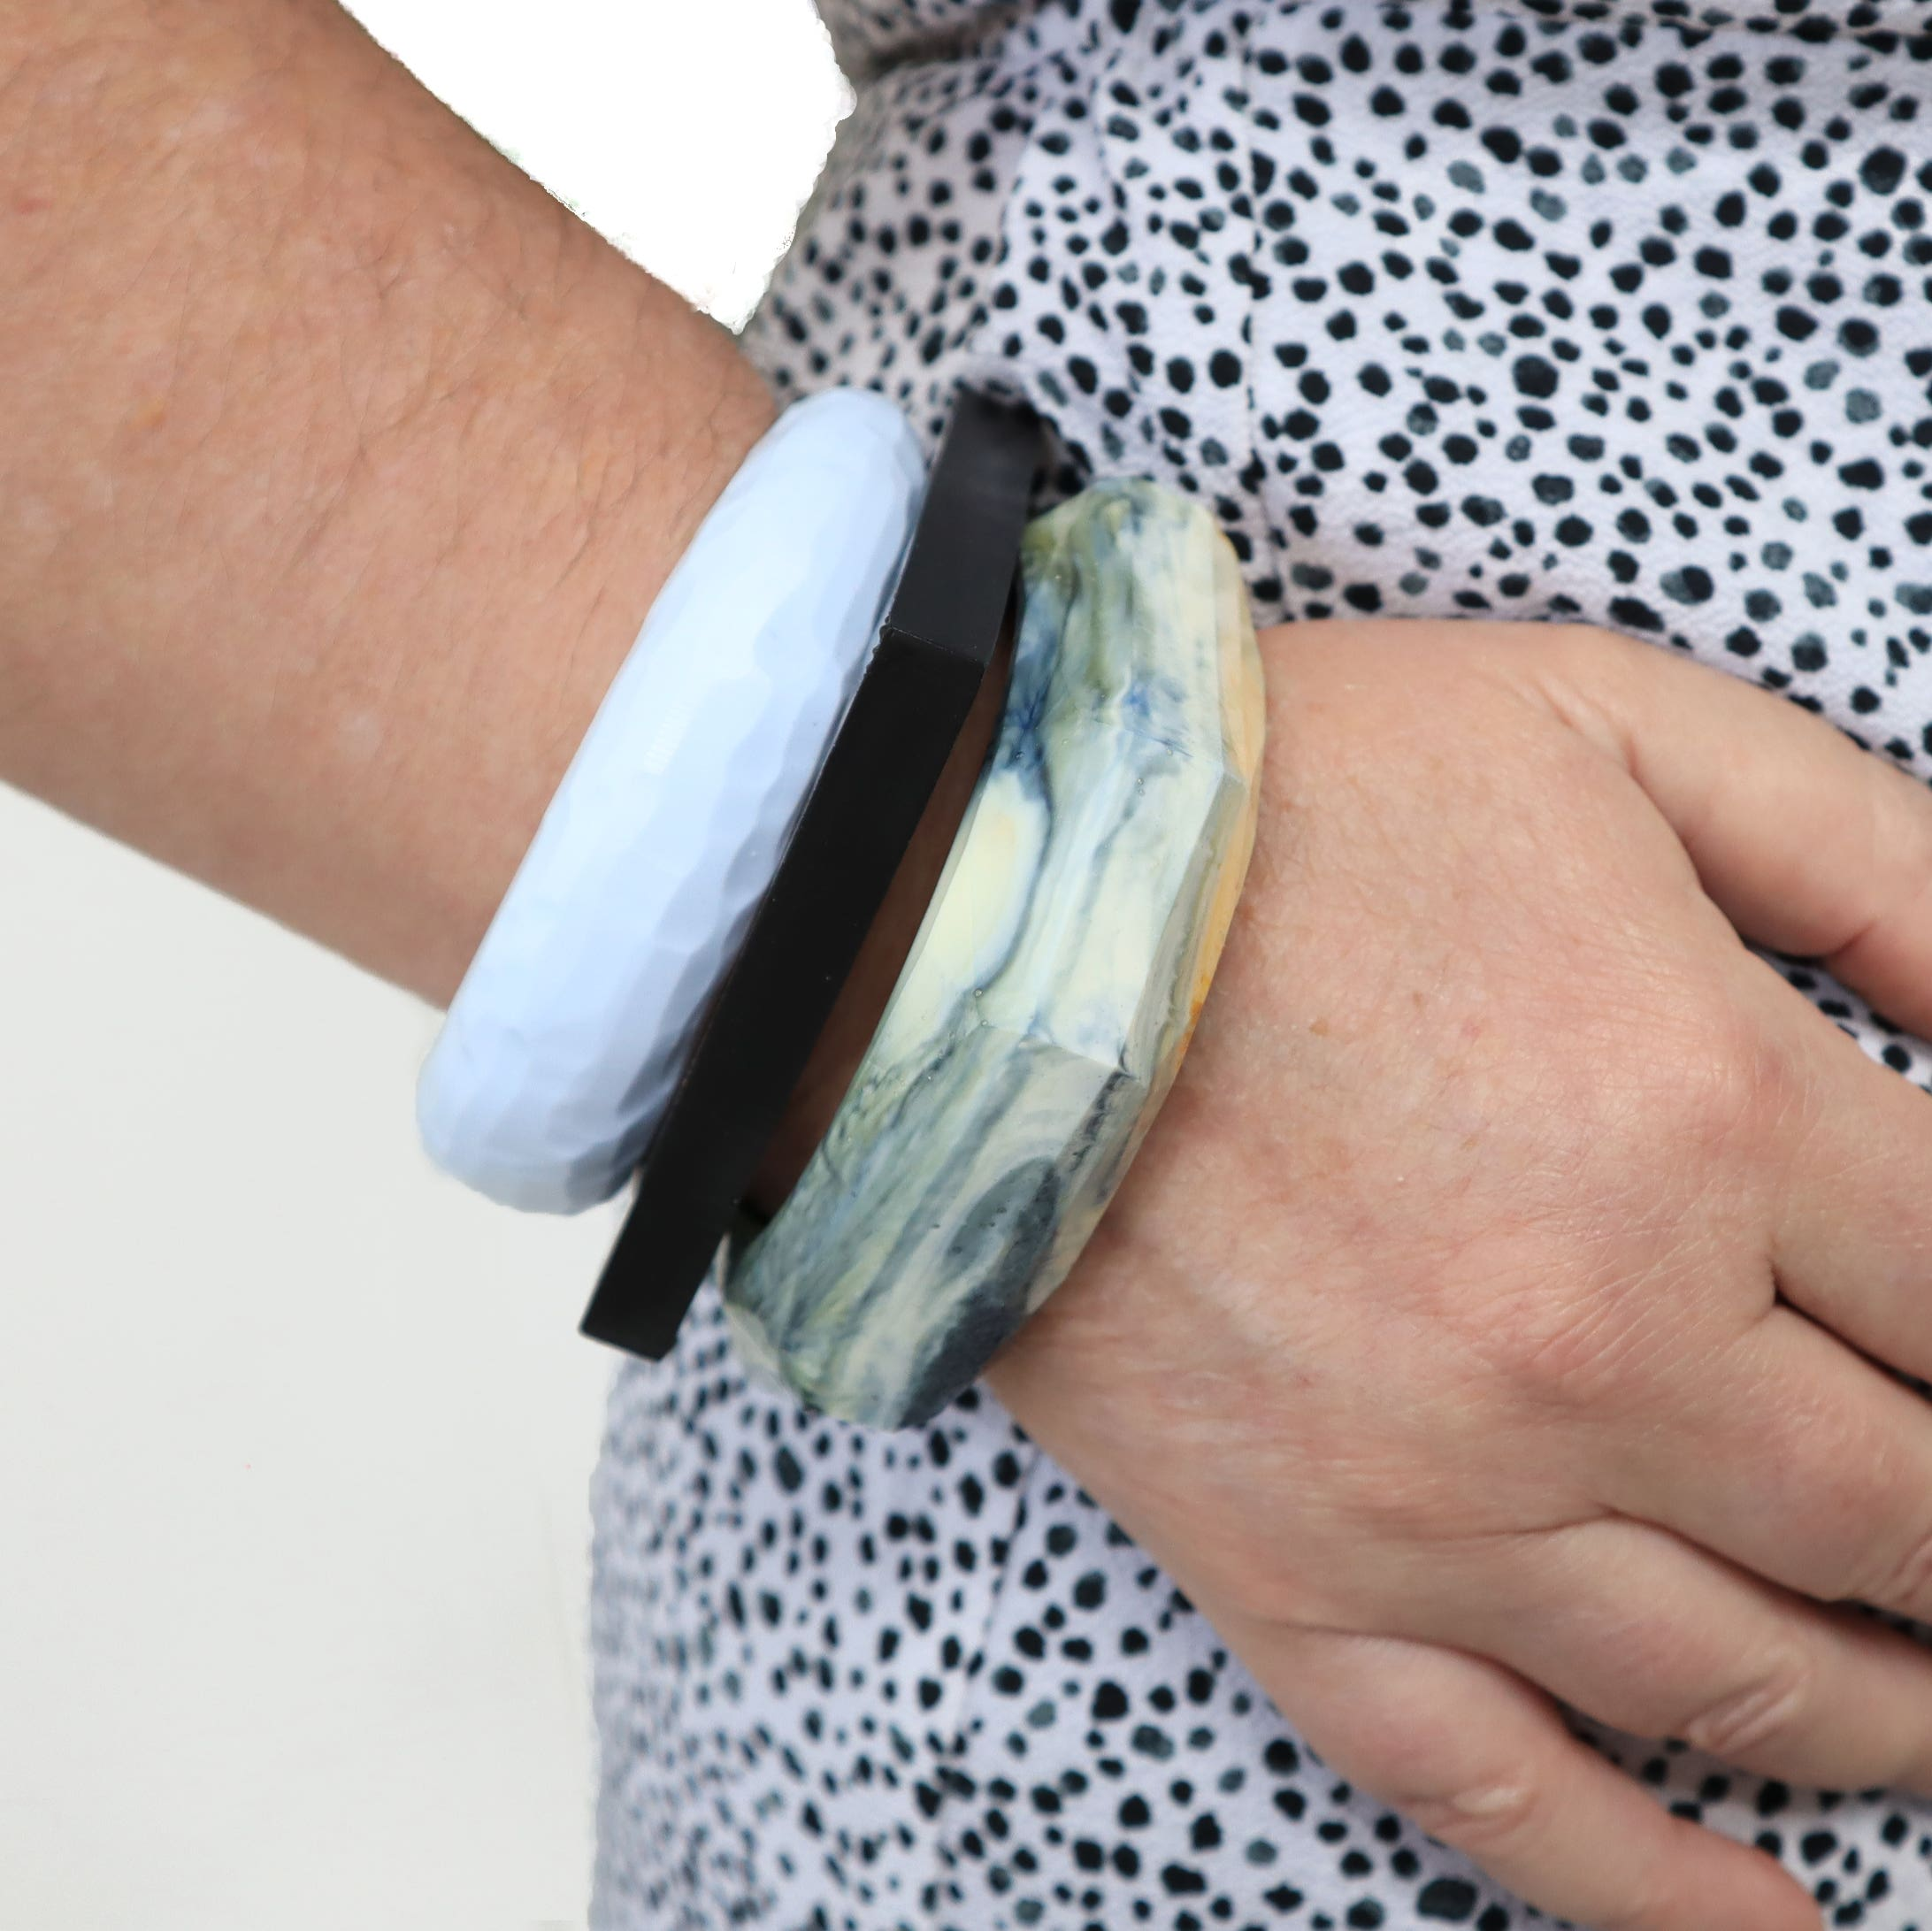 Model wearing stack of bangles in ice blue, black and marbled navy and white